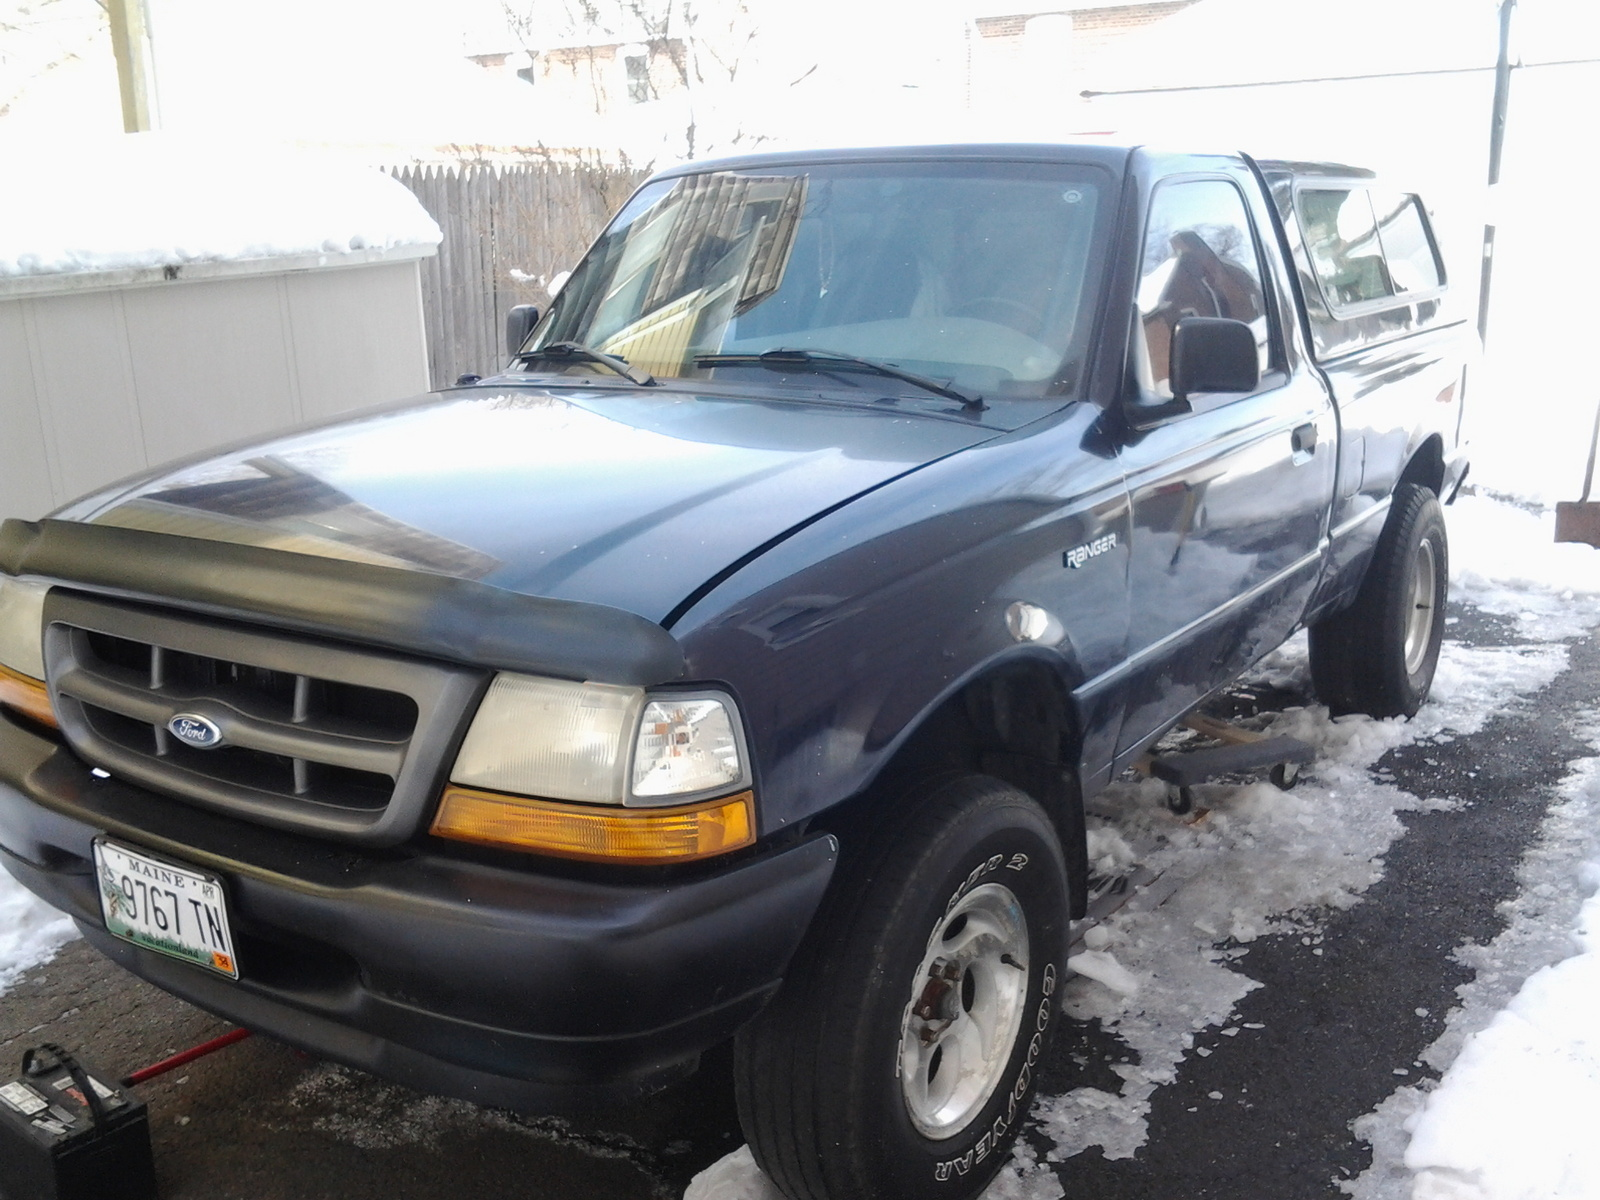 Ford Ranger Questions Old Starter Had Two Wires New One Needs 3 Motor Wiring Harness Mark Helpful